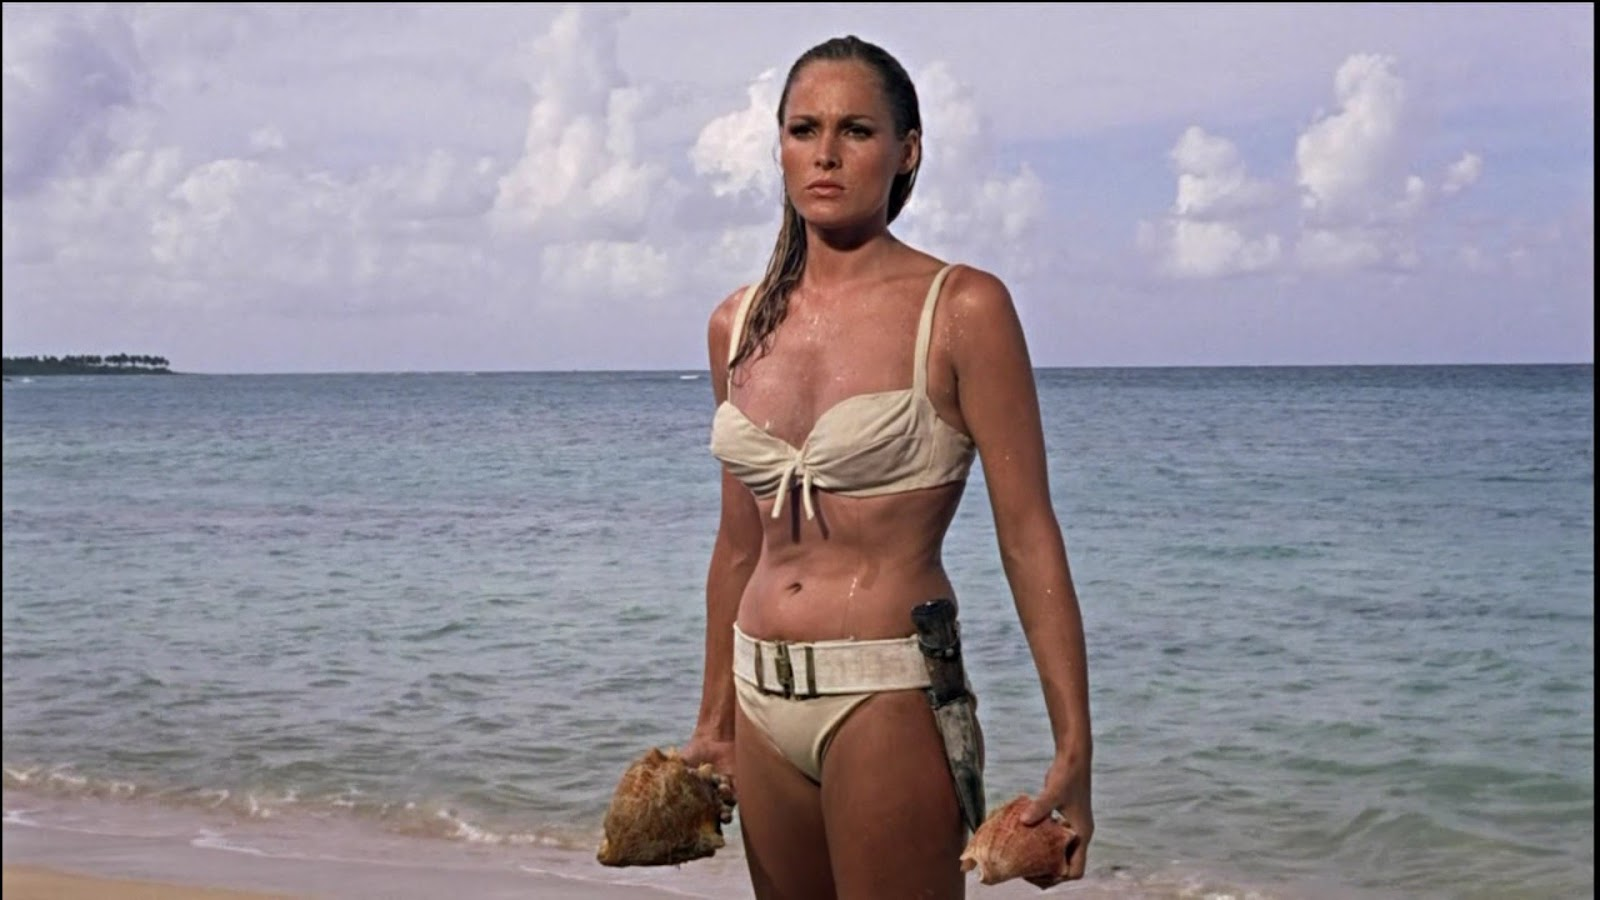 e96bbb227b72d As a side note, Ursula Andress is my celebrity torso double as well as my  bikini idol. Like me, she has a short torso that's kind of flattened in the  front ...